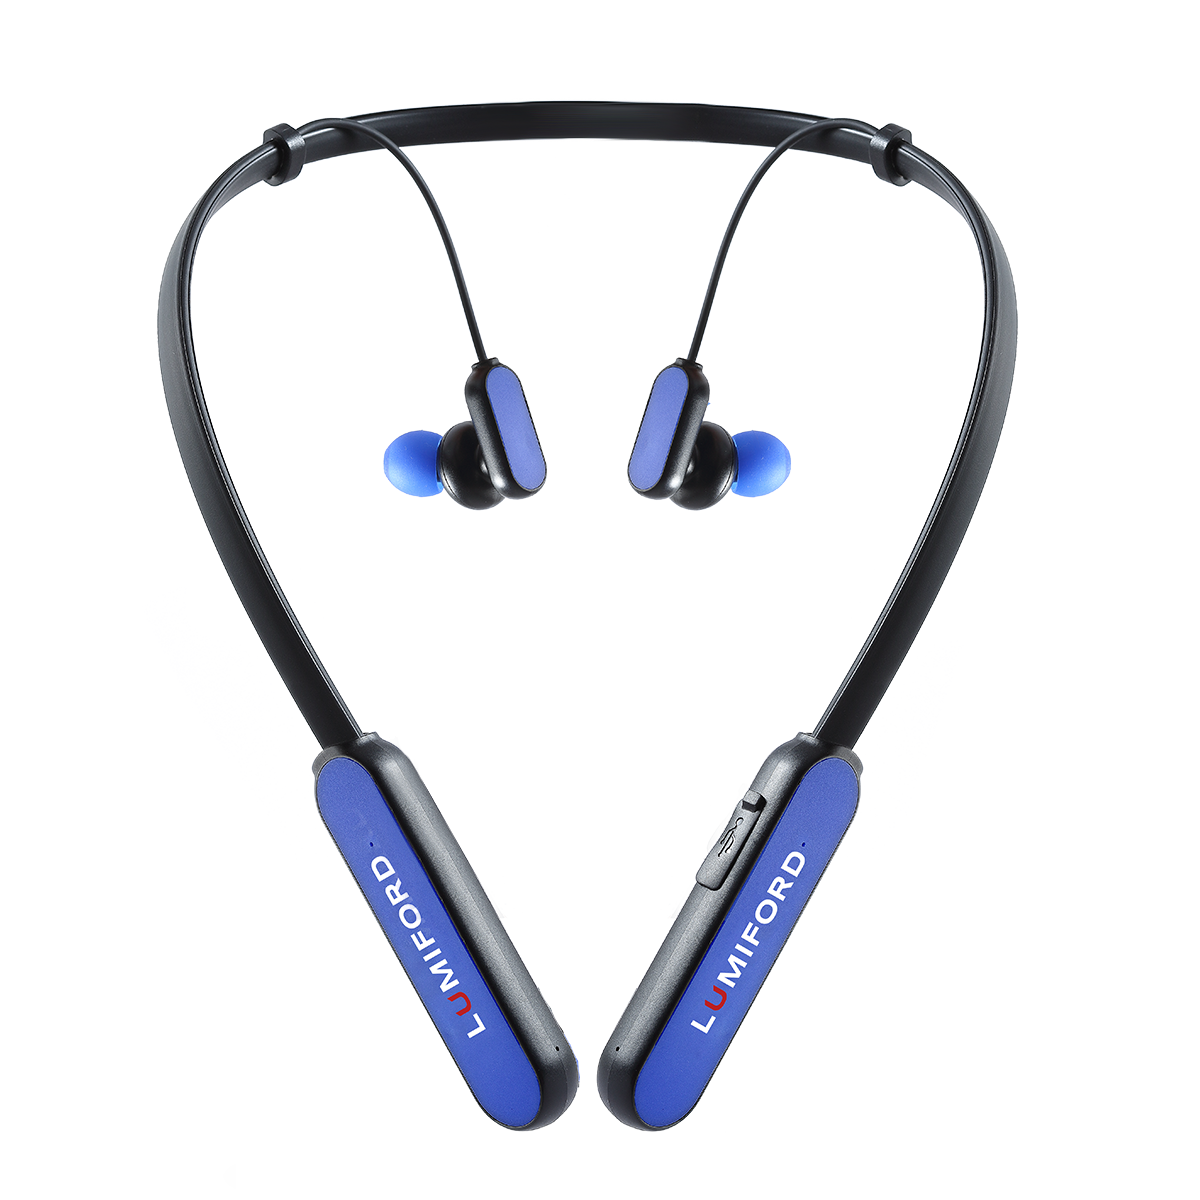 LUMIFORD XP50 pro Wireless Neckband in-Ear Earphones with Noise Cancellation